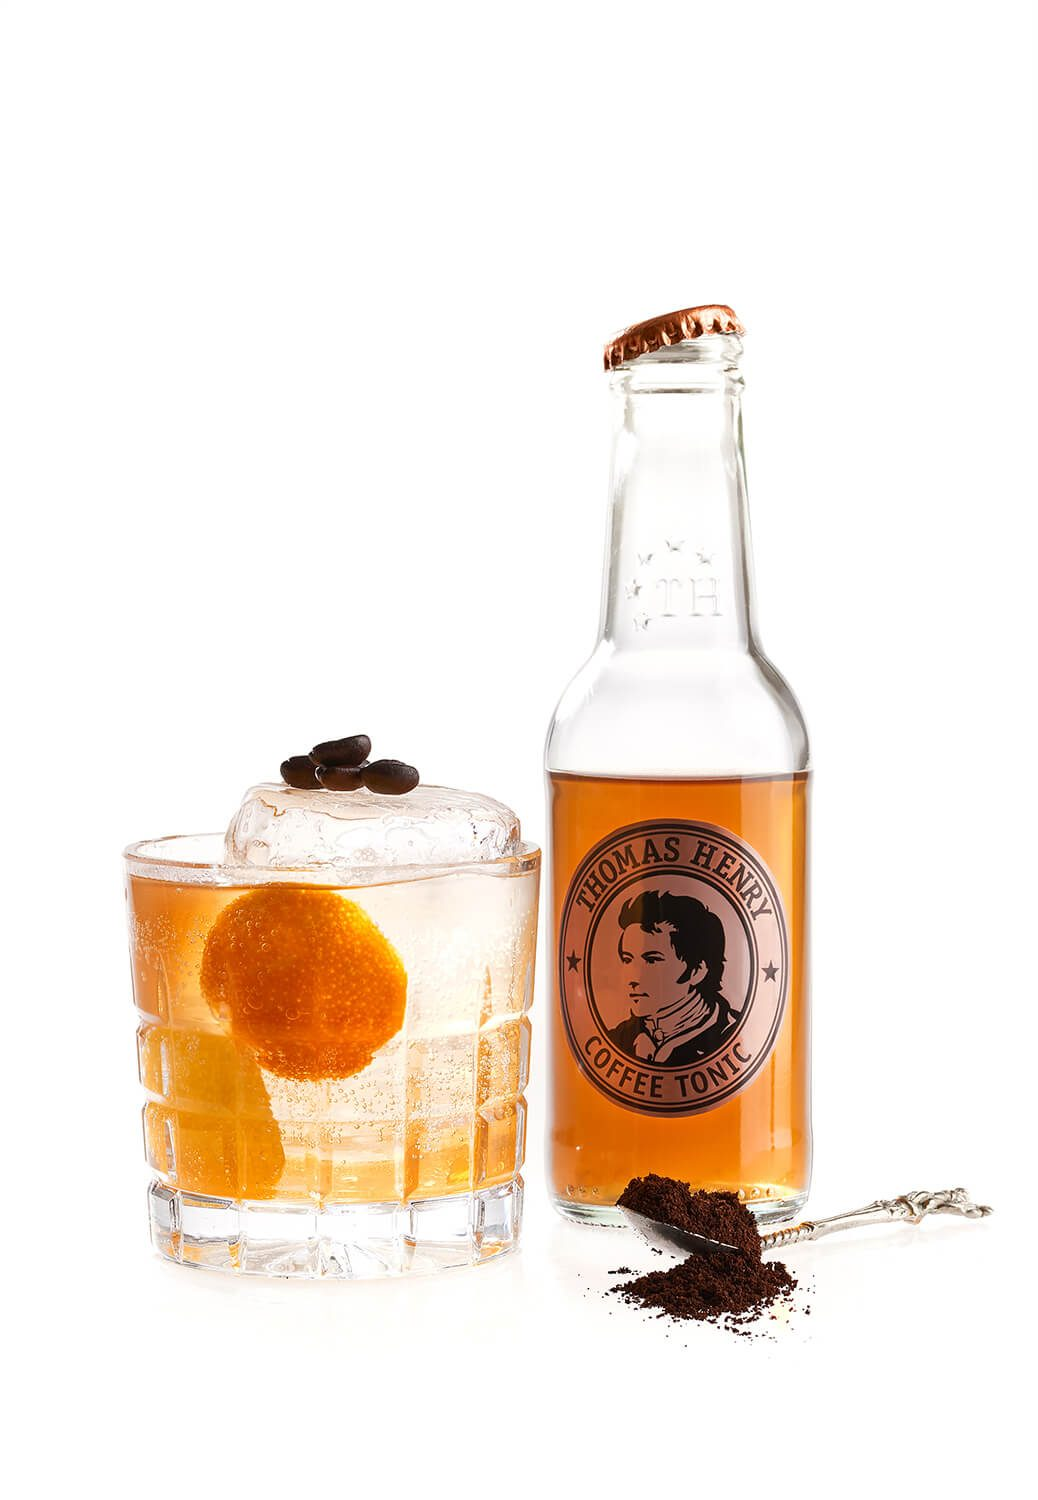 Thomas Henry Coffee Tonic On the Rocks